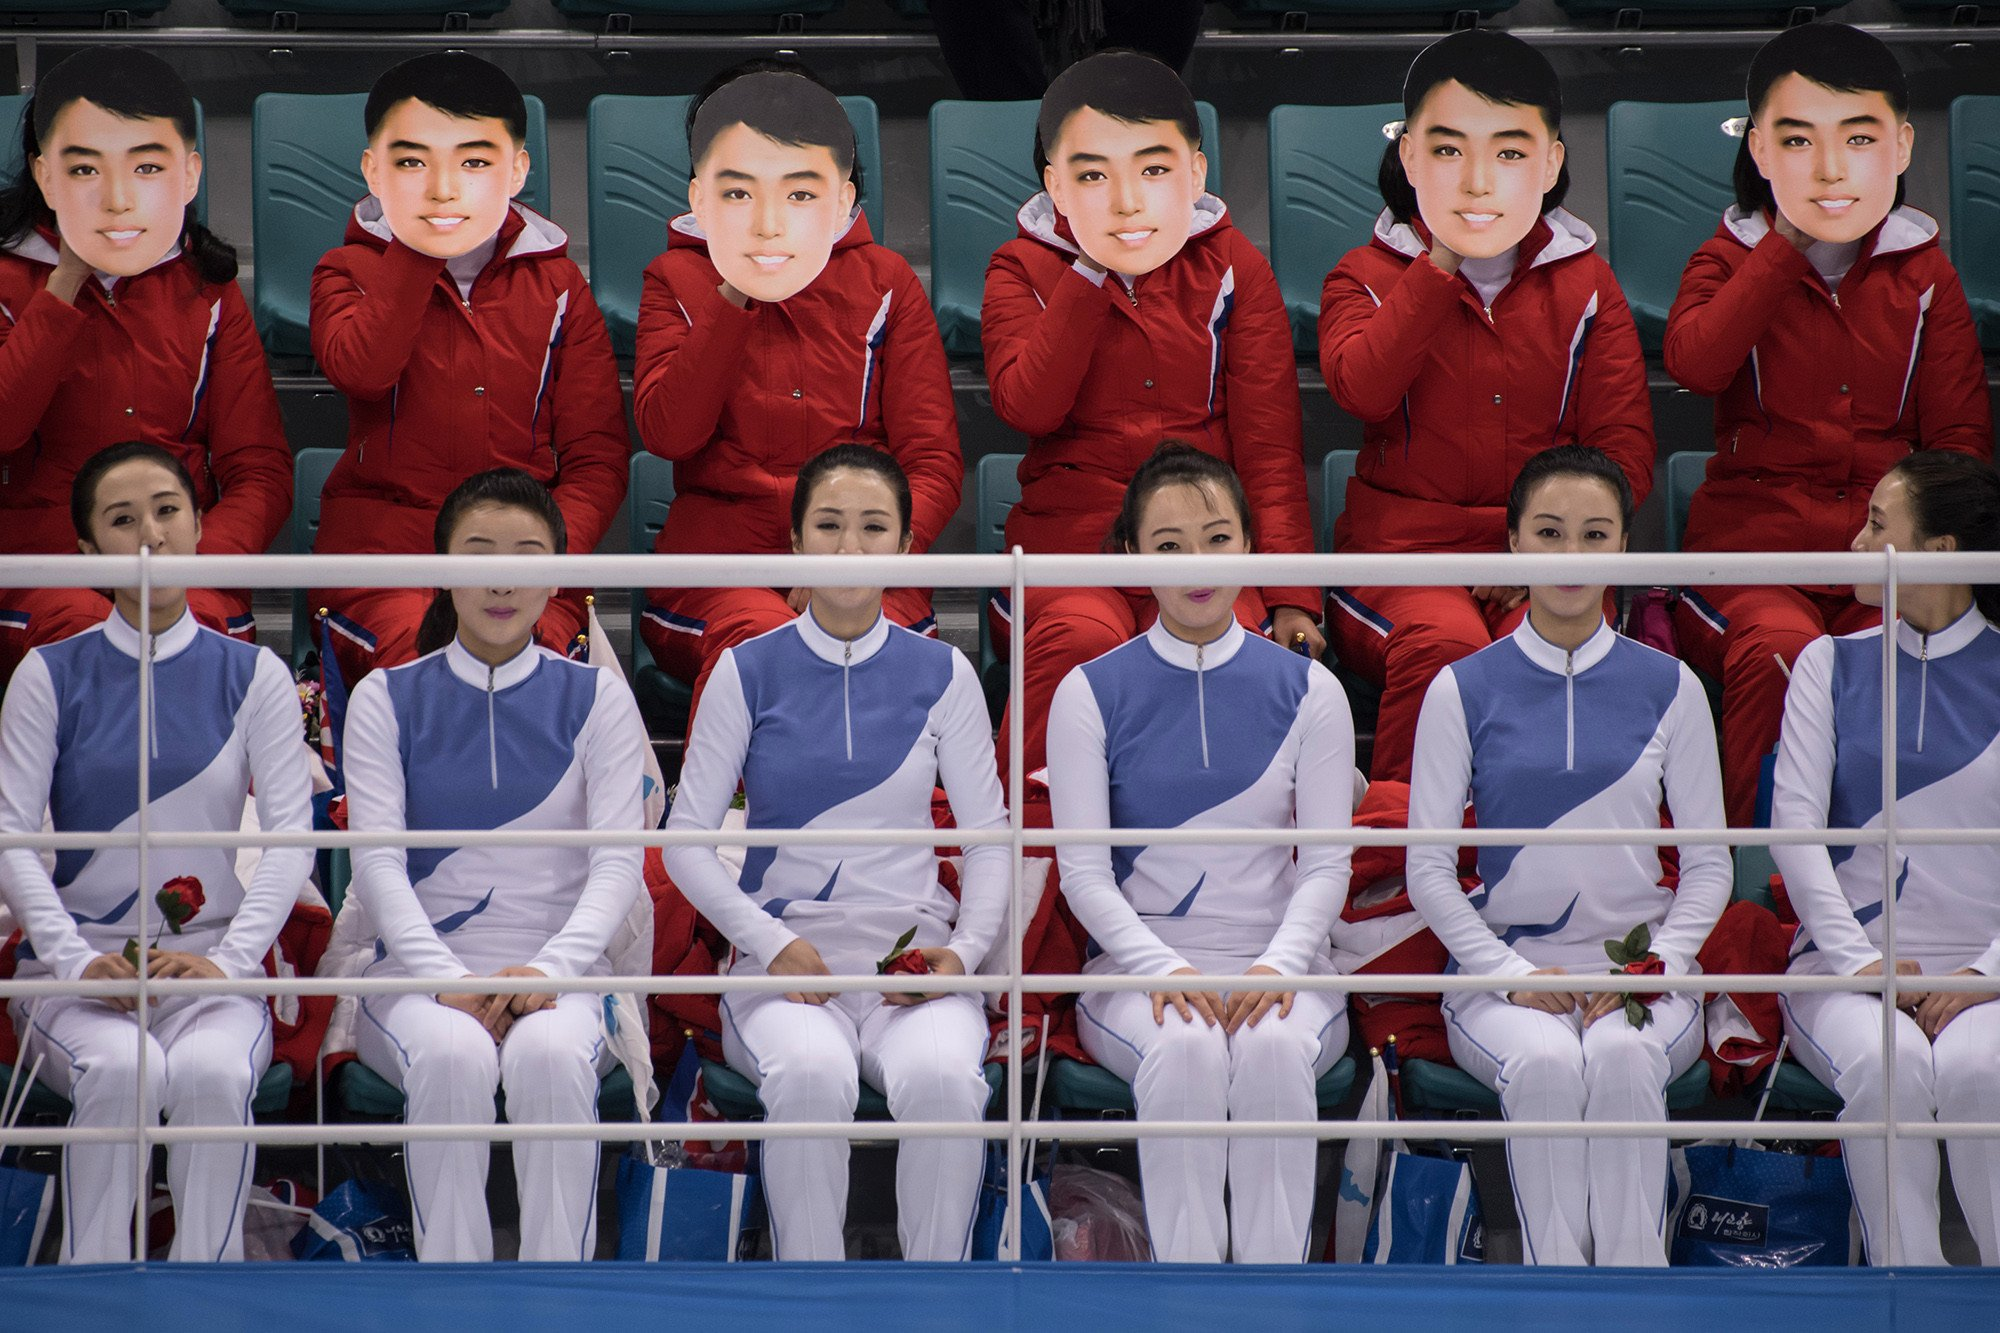 North Korea is already using the Olympics for propaganda